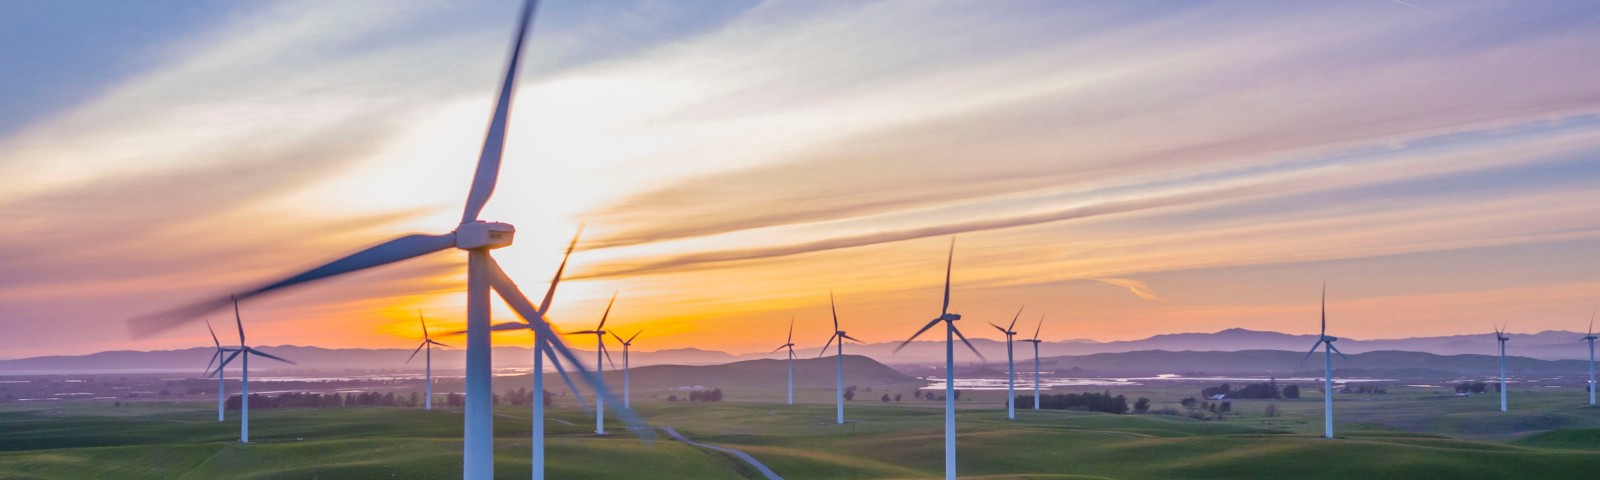 Windfarm windmills on green rolling hills against a sunset.